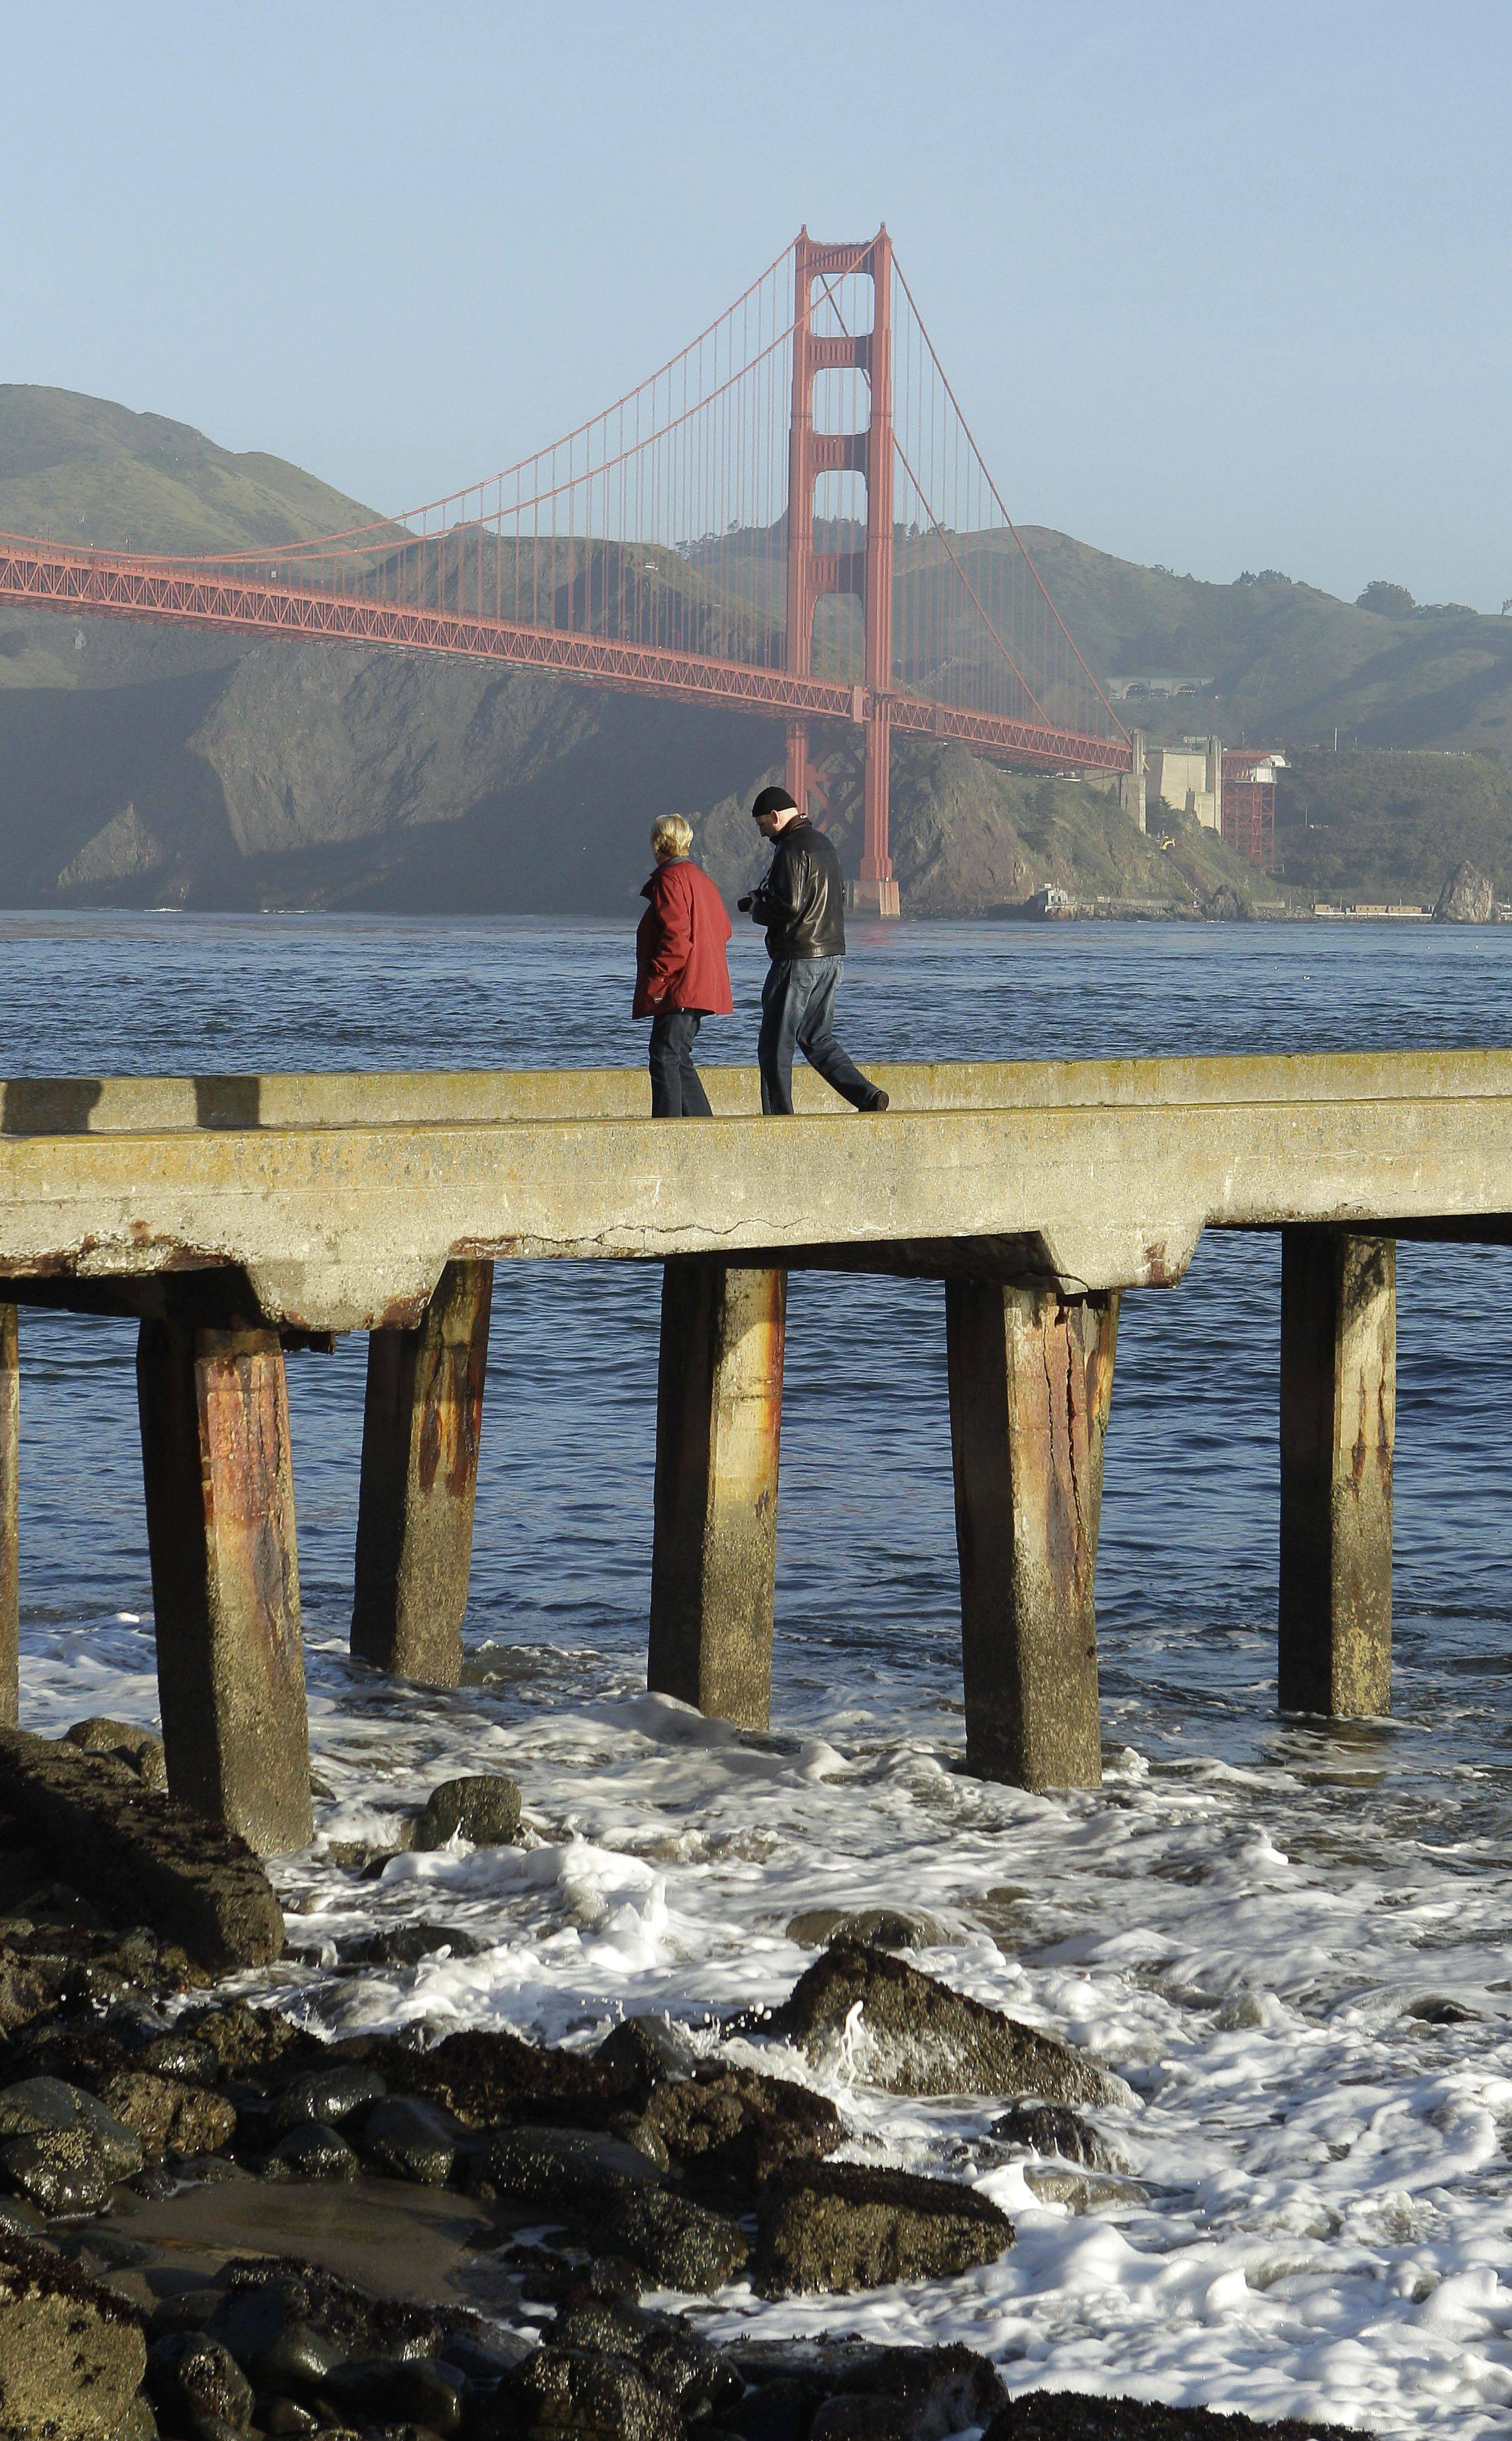 With a tsunami warning in effect for Northern California, a man and woman walk along a pier at Fort Point near the Golden Gate Bridge in San Francisco on Friday, March 11, 2011. The warnings came after a 8.9-magnitude earthquake and a tsunami struck Japan.